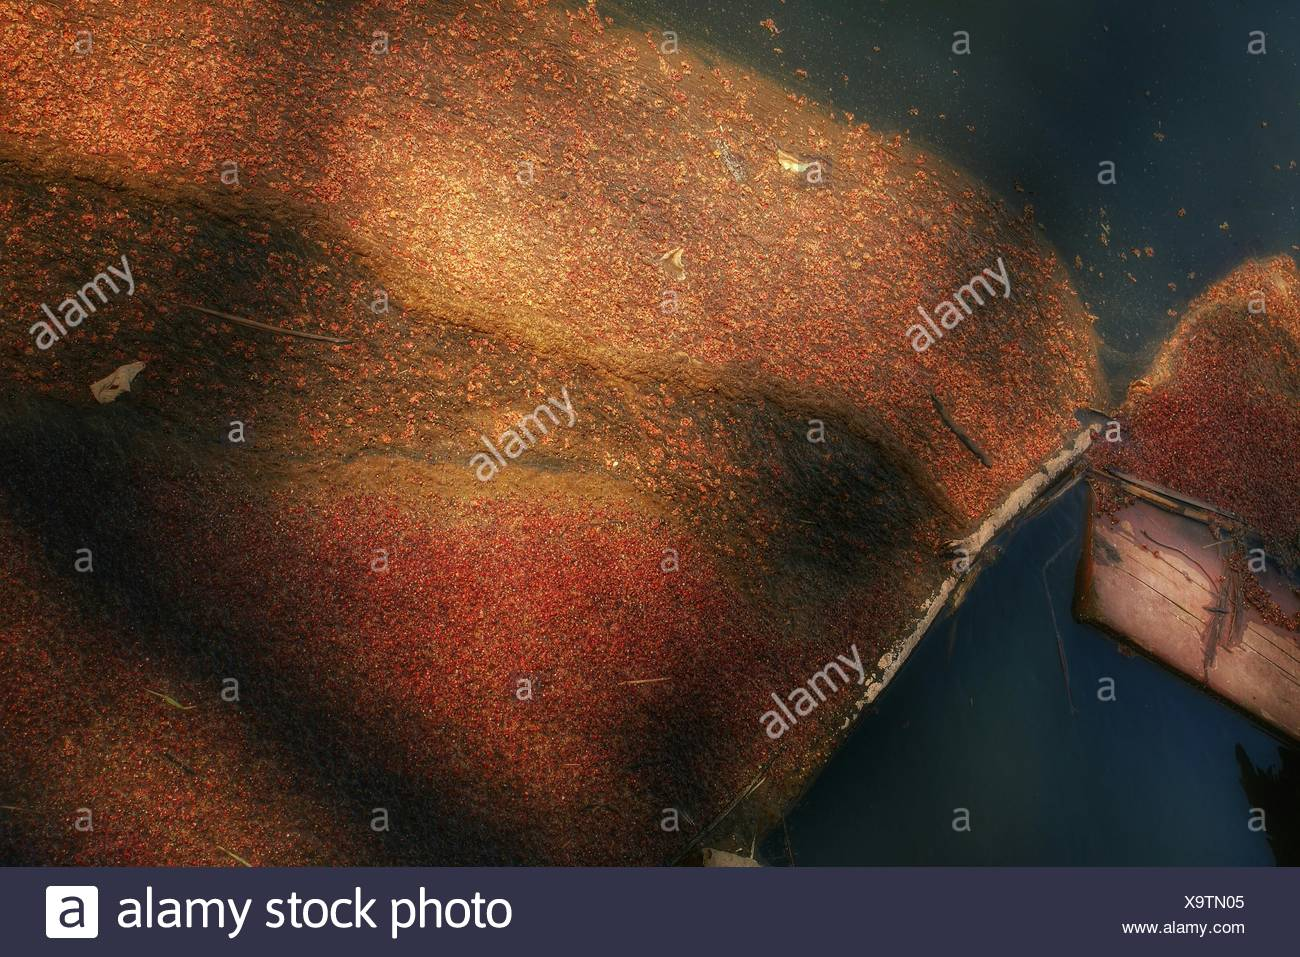 Messy Dirt Floating On Water - Stock Image